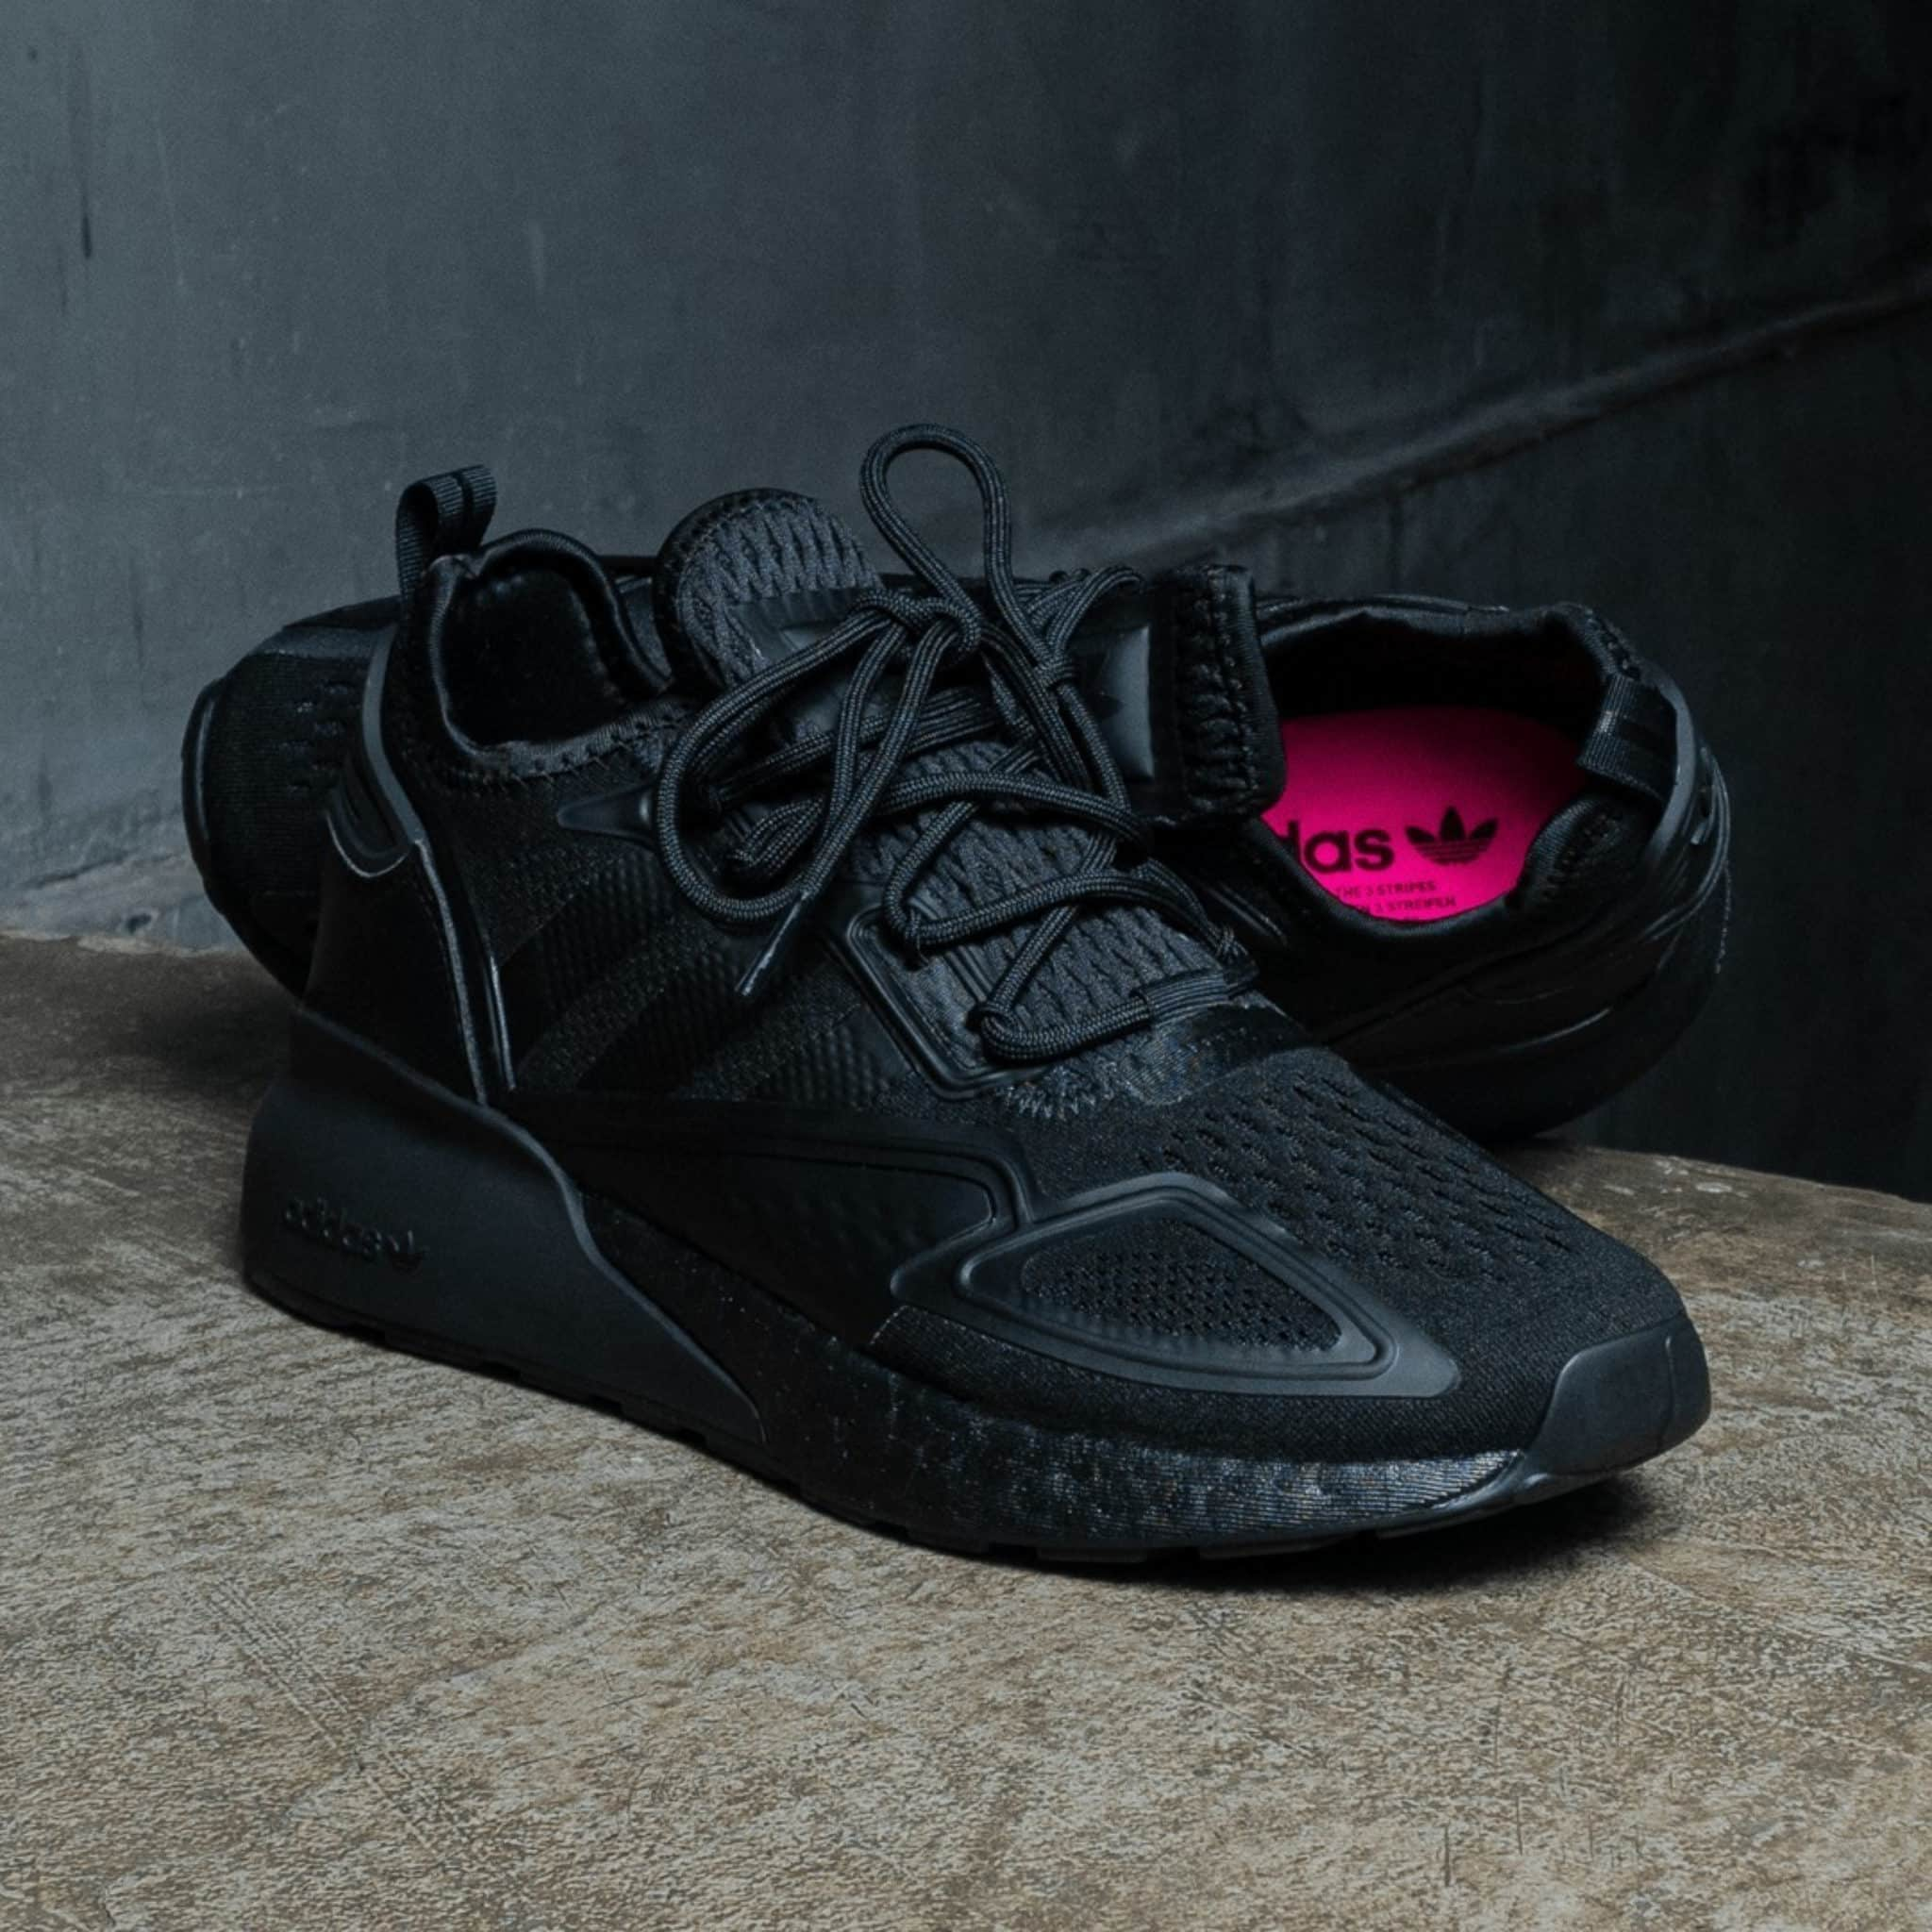 Adidas ZX 2K BOOST SHOES core black